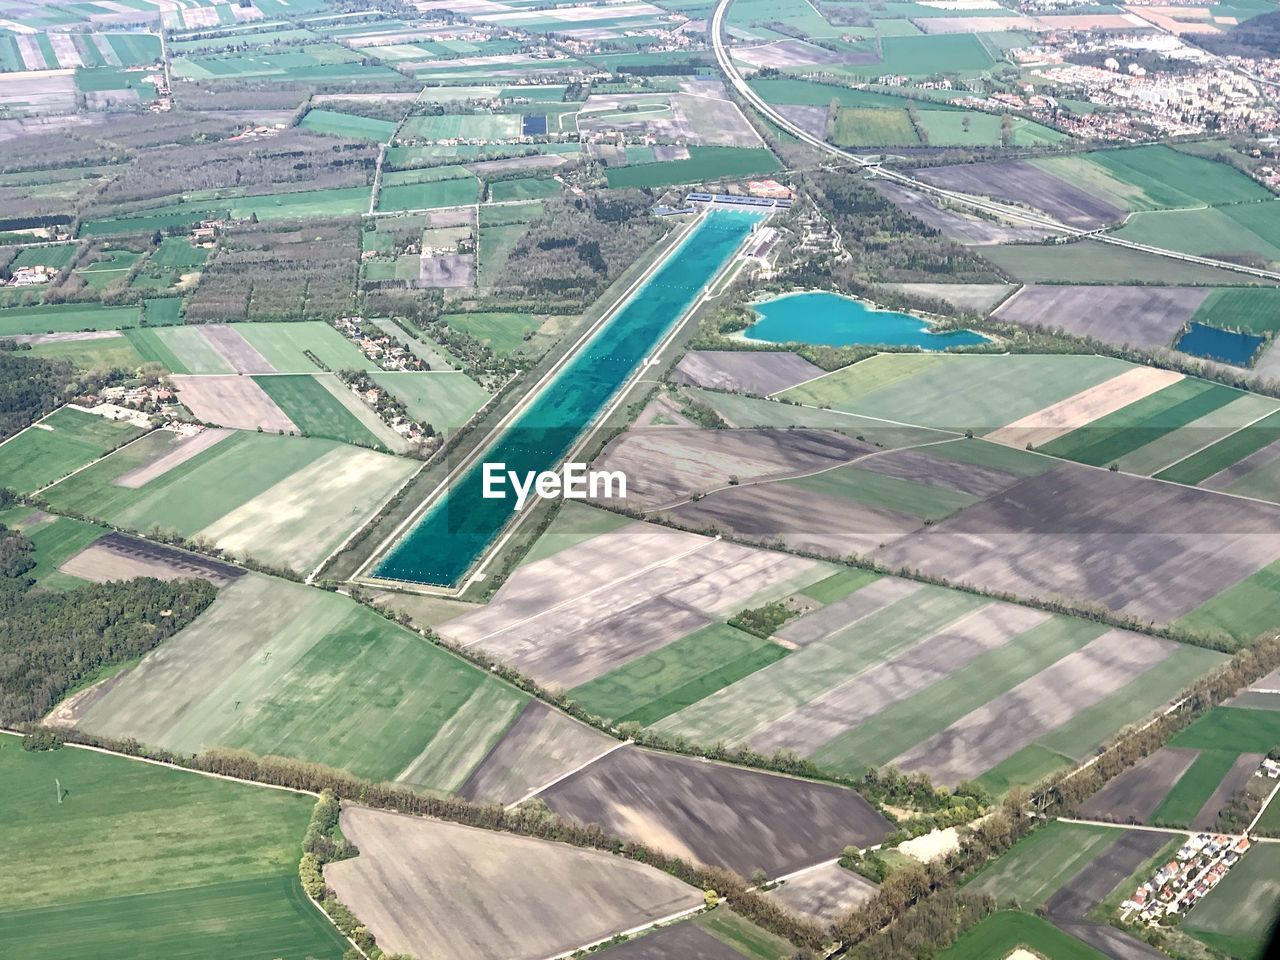 aerial view, water, environment, landscape, agriculture, scenics - nature, patchwork landscape, day, beauty in nature, nature, field, land, rural scene, tranquil scene, no people, tranquility, farm, outdoors, high angle view, swimming pool